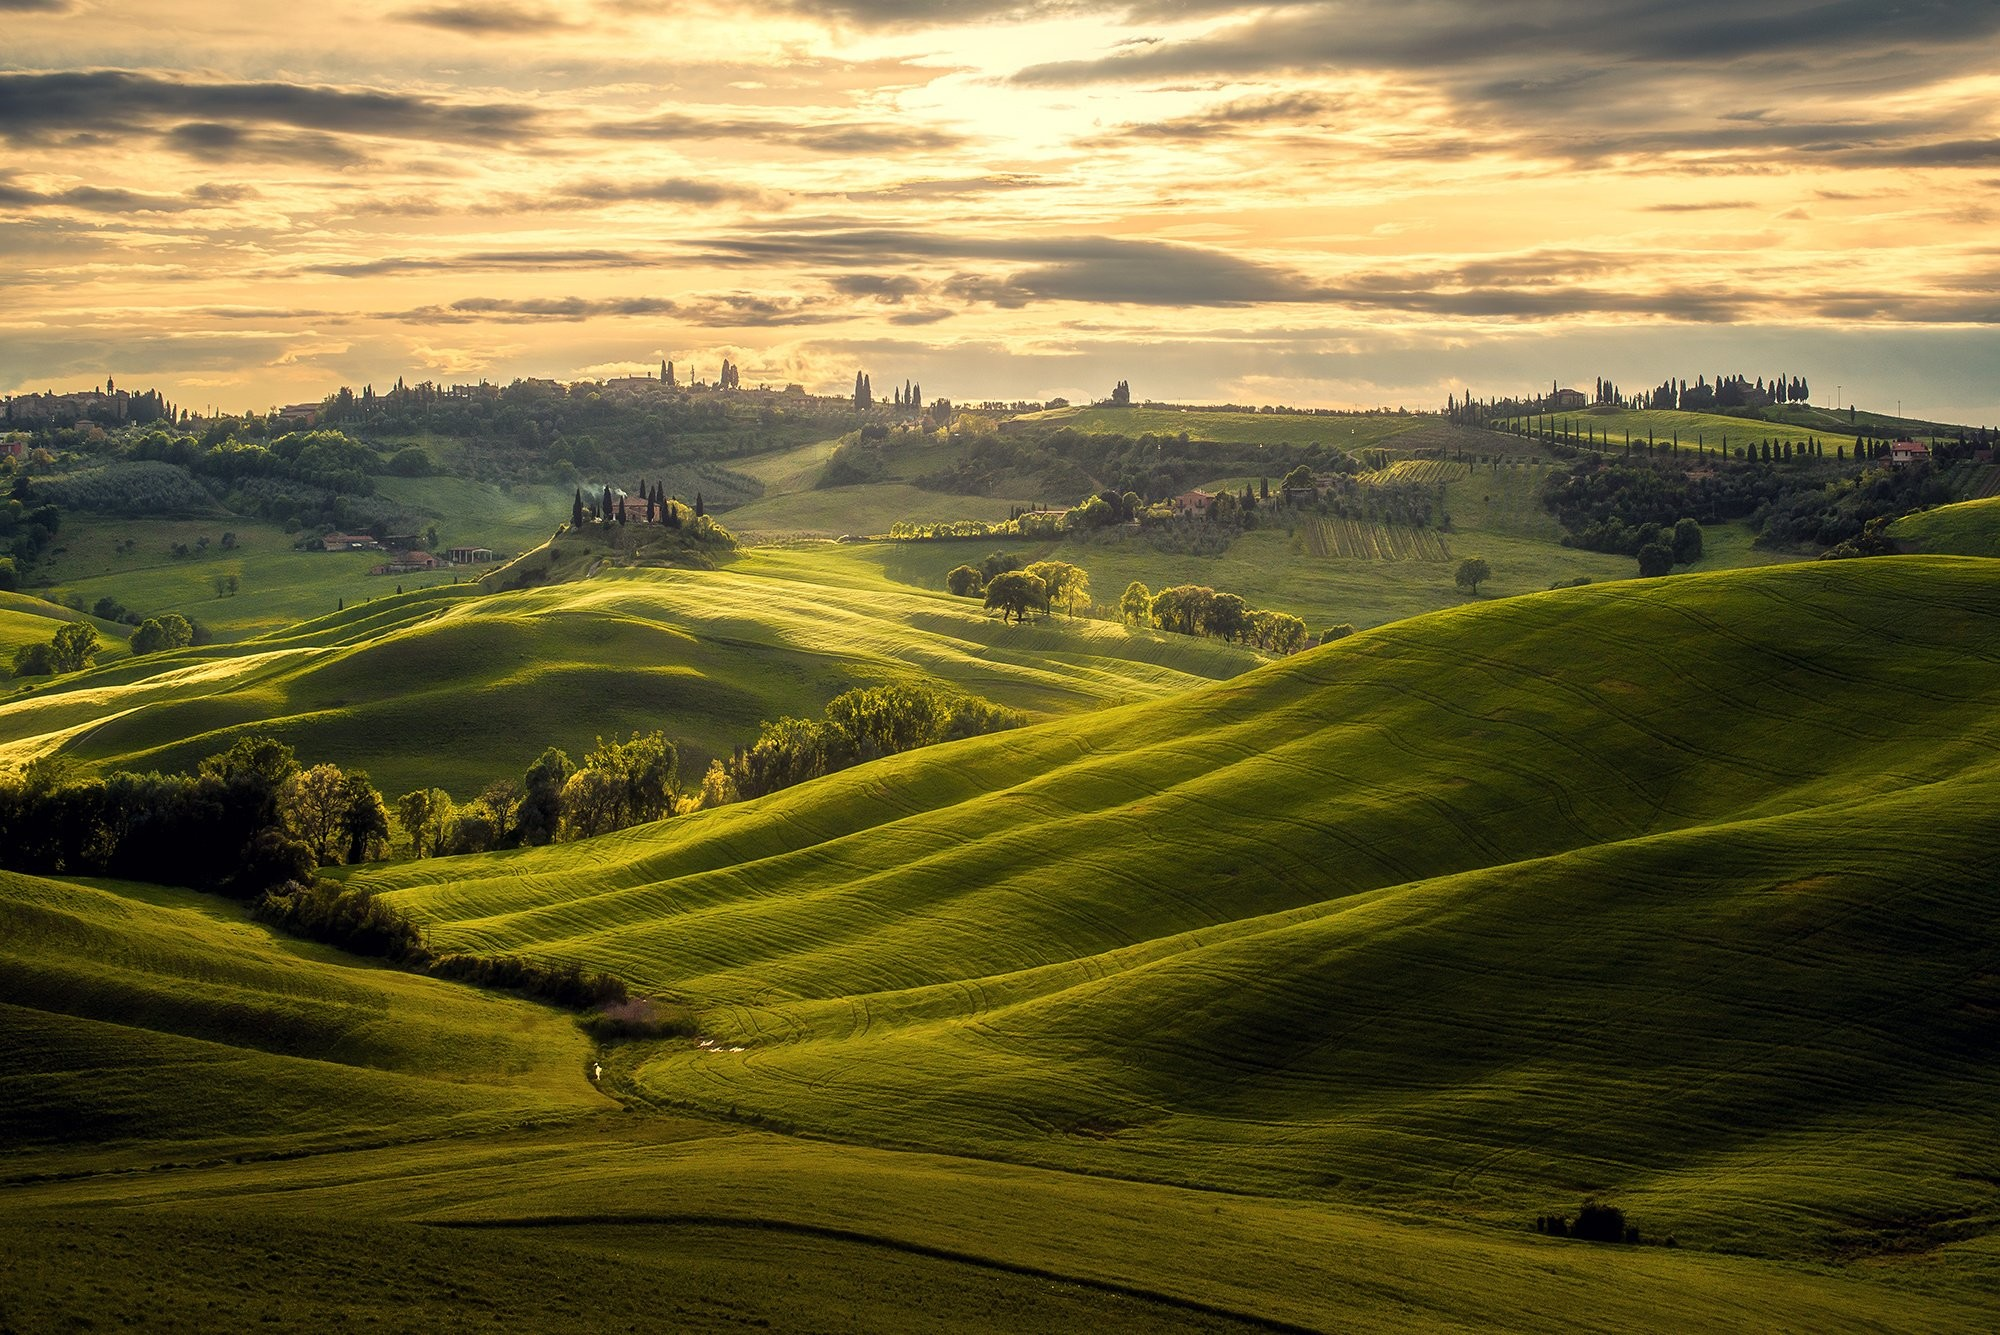 2000x1335 download, windows , stock, nature italy, landscape, green,clouds, free,  desktop images, tuscany Wallpaper HD